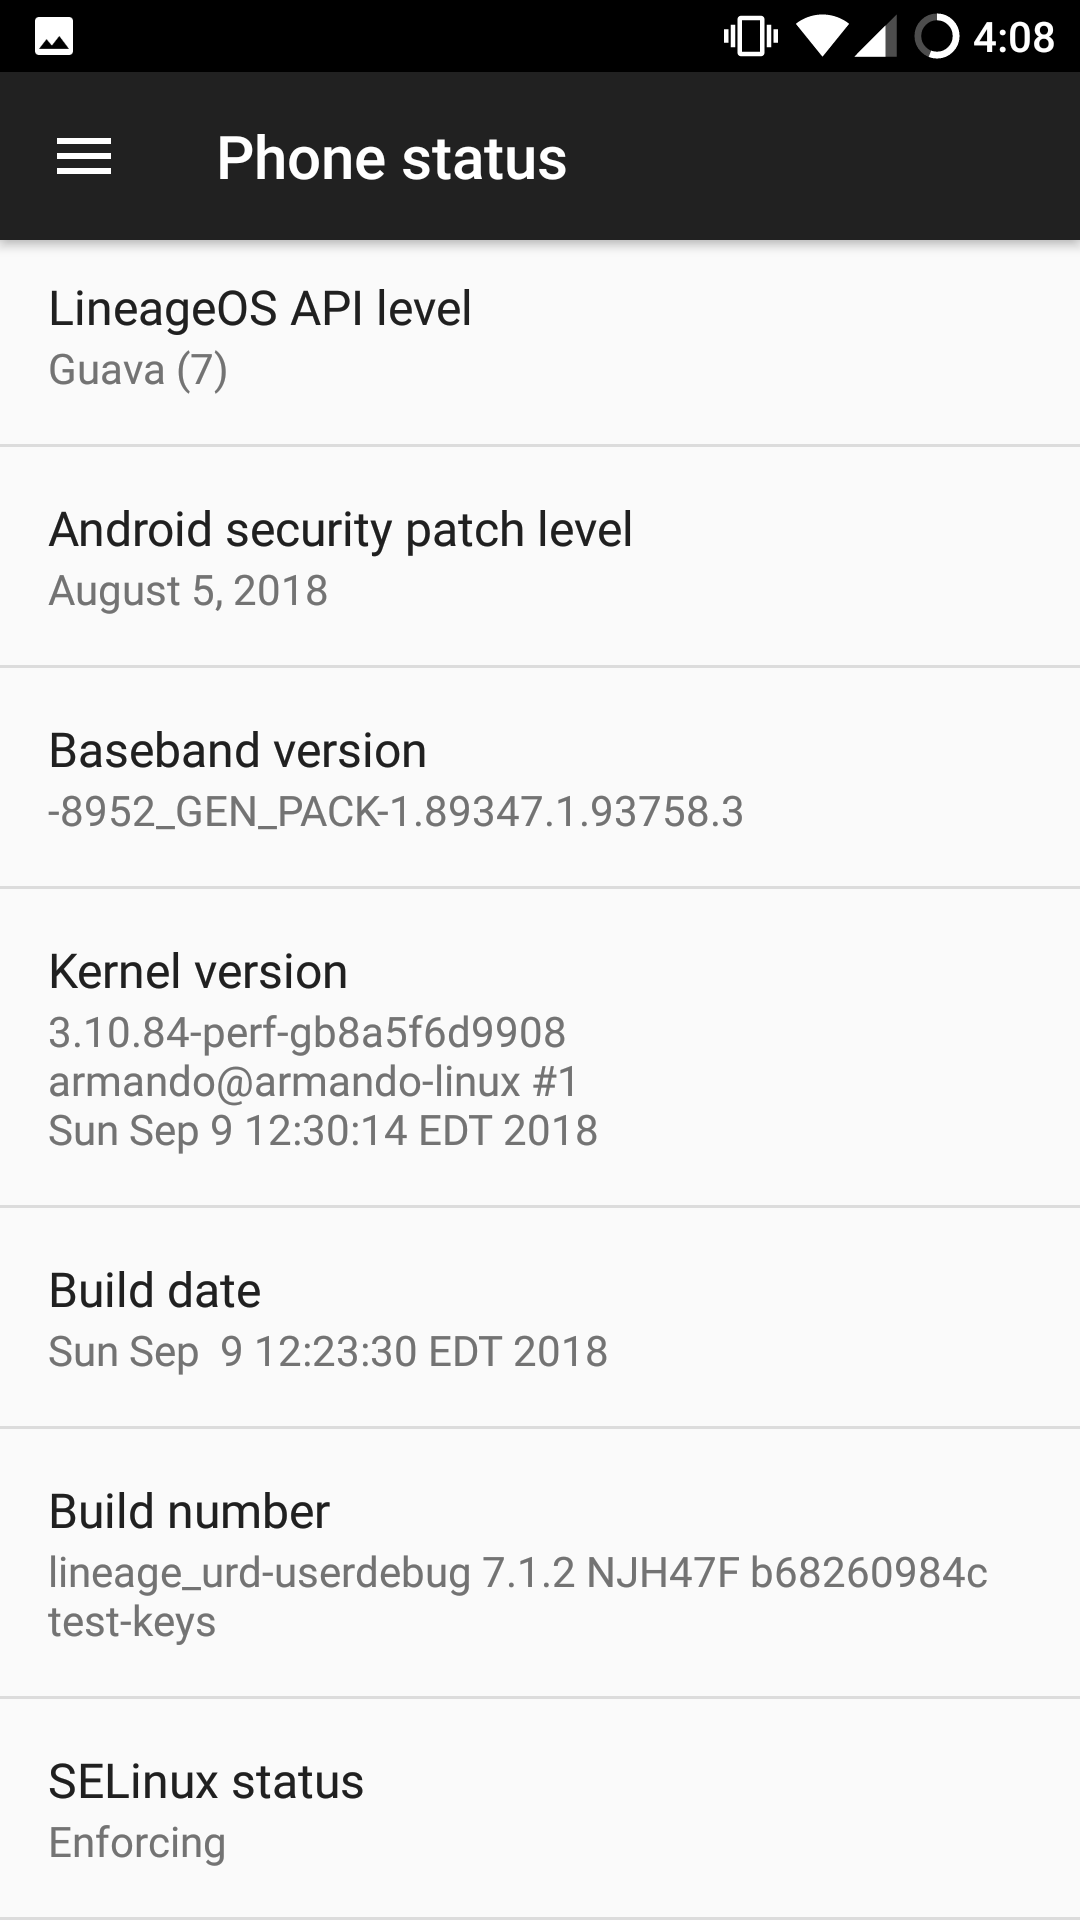 ROM][UNOFFICIAL] Lineage OS 14 1 for ZTE ZMAX PRO - ZTE Zmax Pro